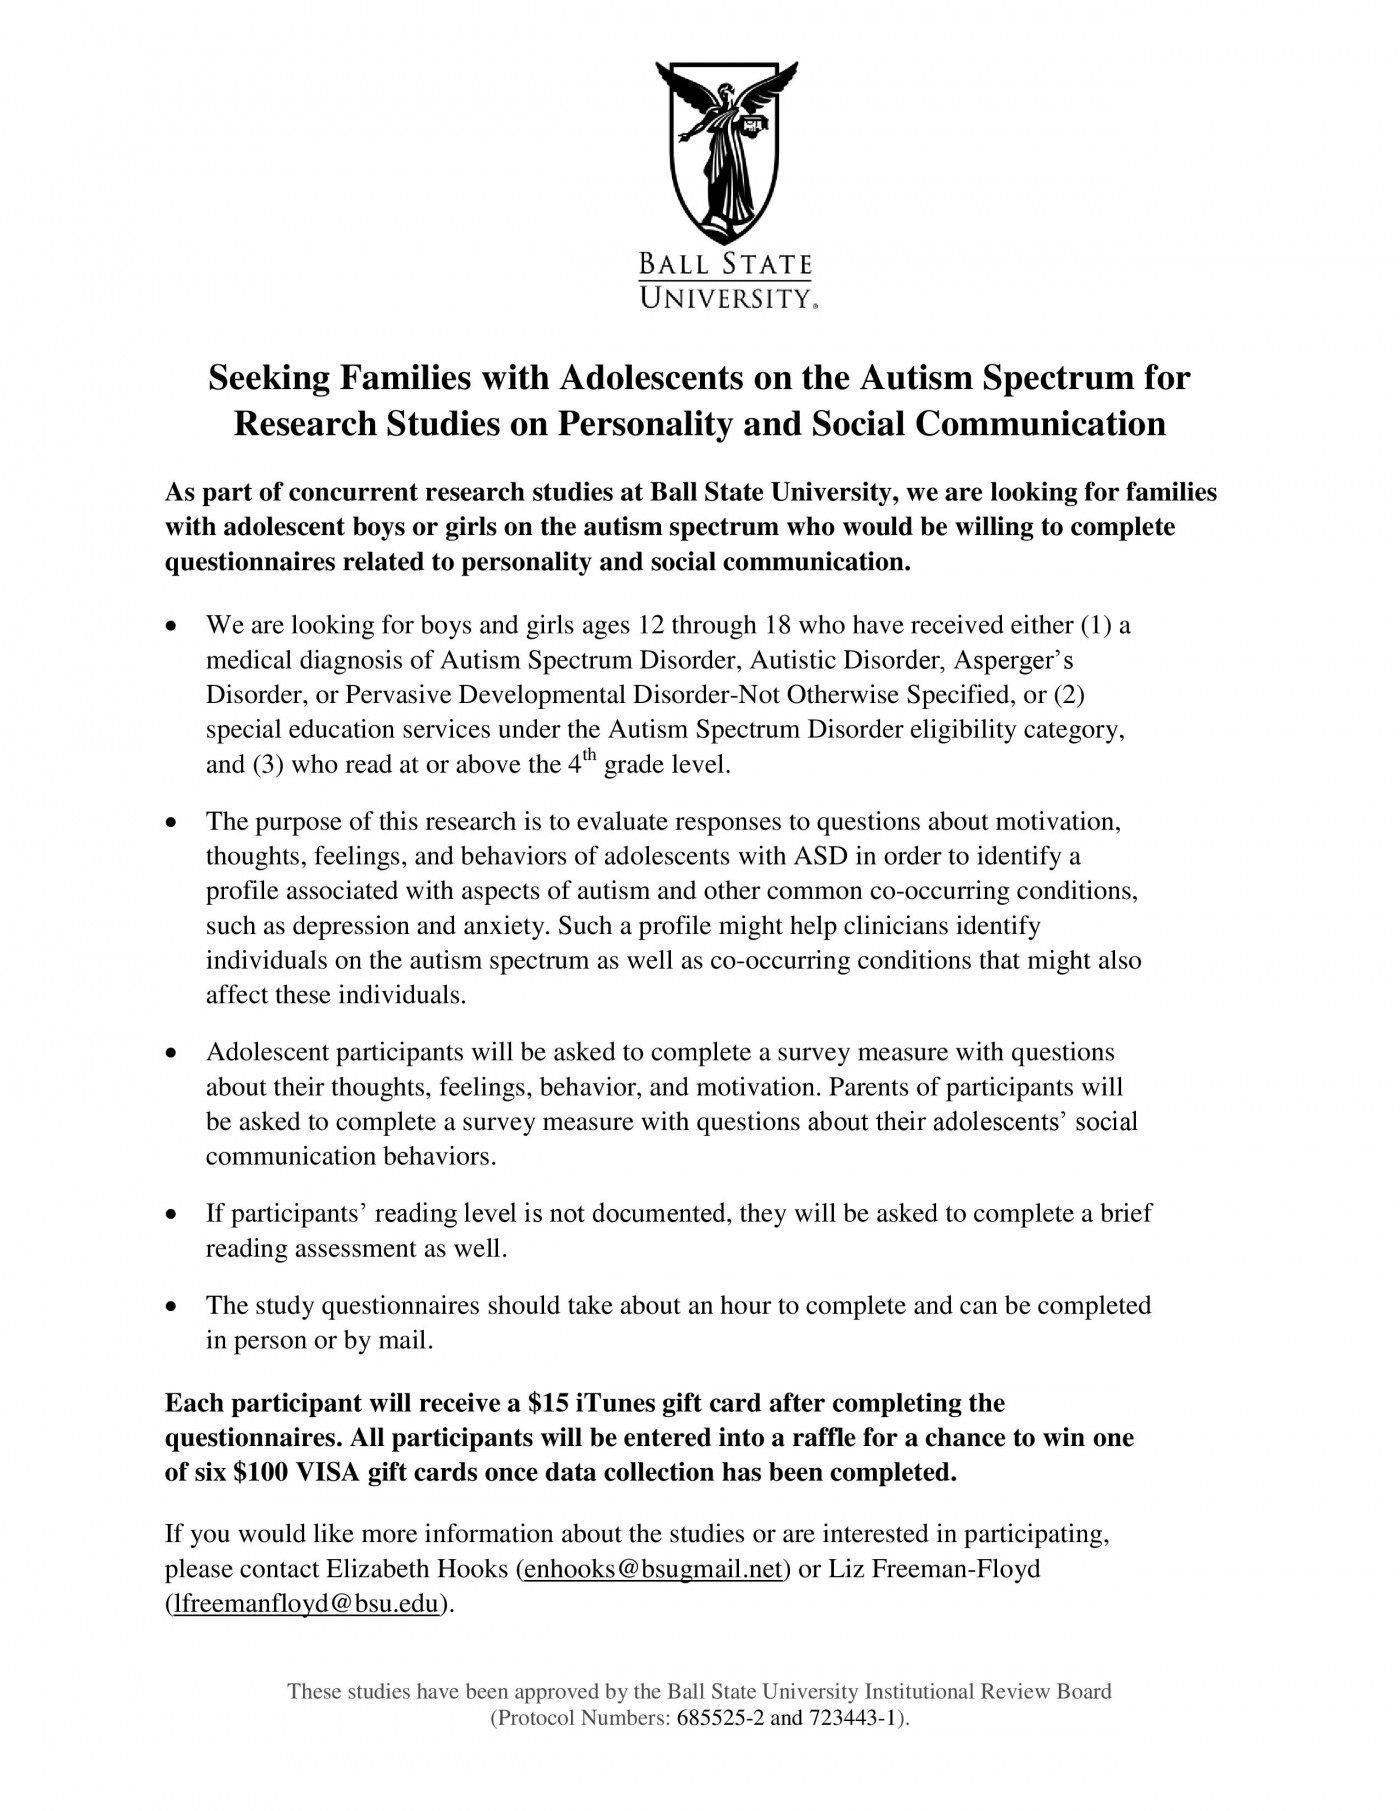 027 Research Paper Cover Letter For Questionnaire ~ Museumlegs